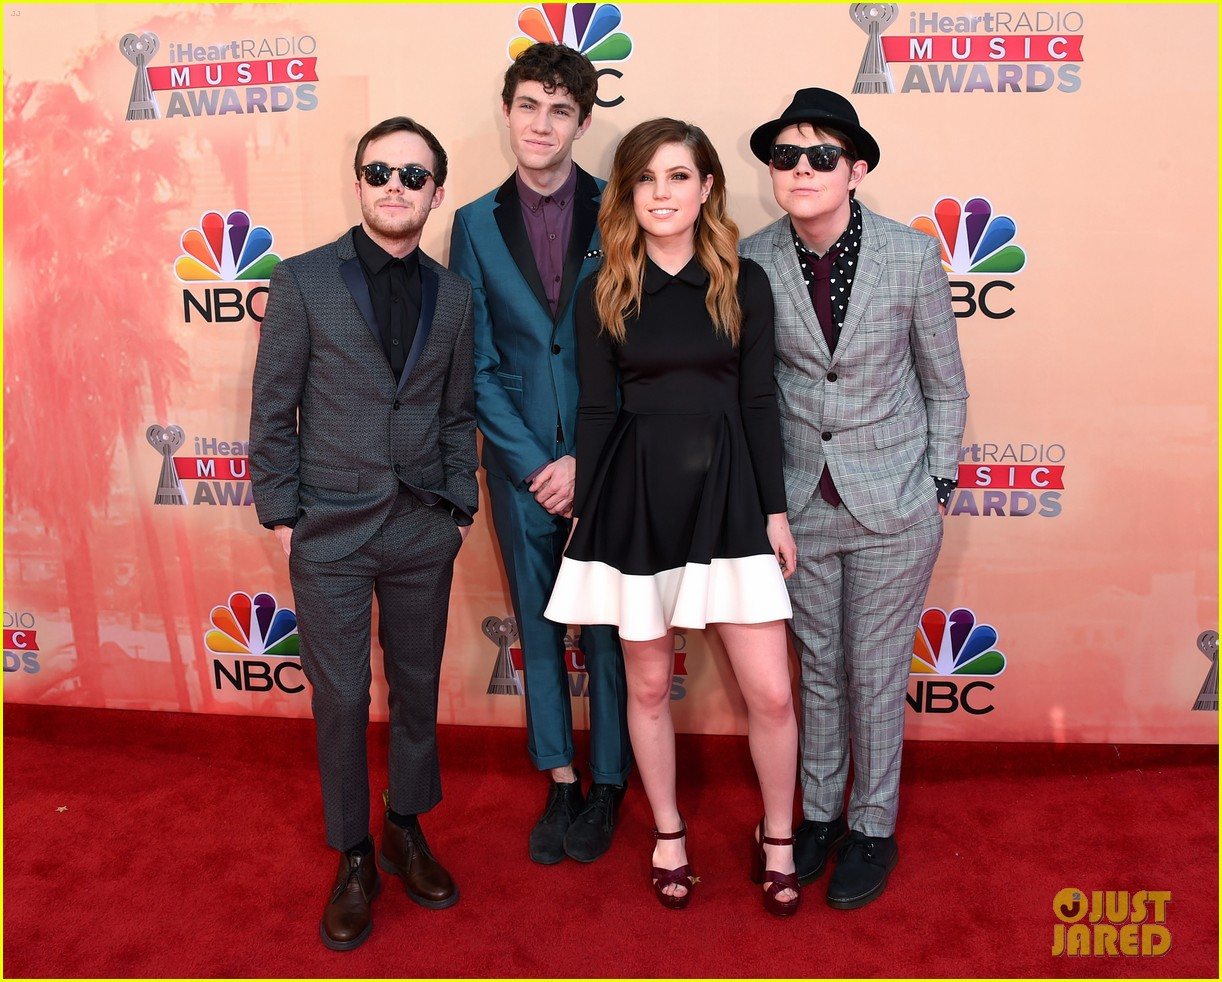 Echosmith r5 rock out at iheartradio music awards 2015 photo echosmith r5 rock out at iheartradio music awards 2015 m4hsunfo